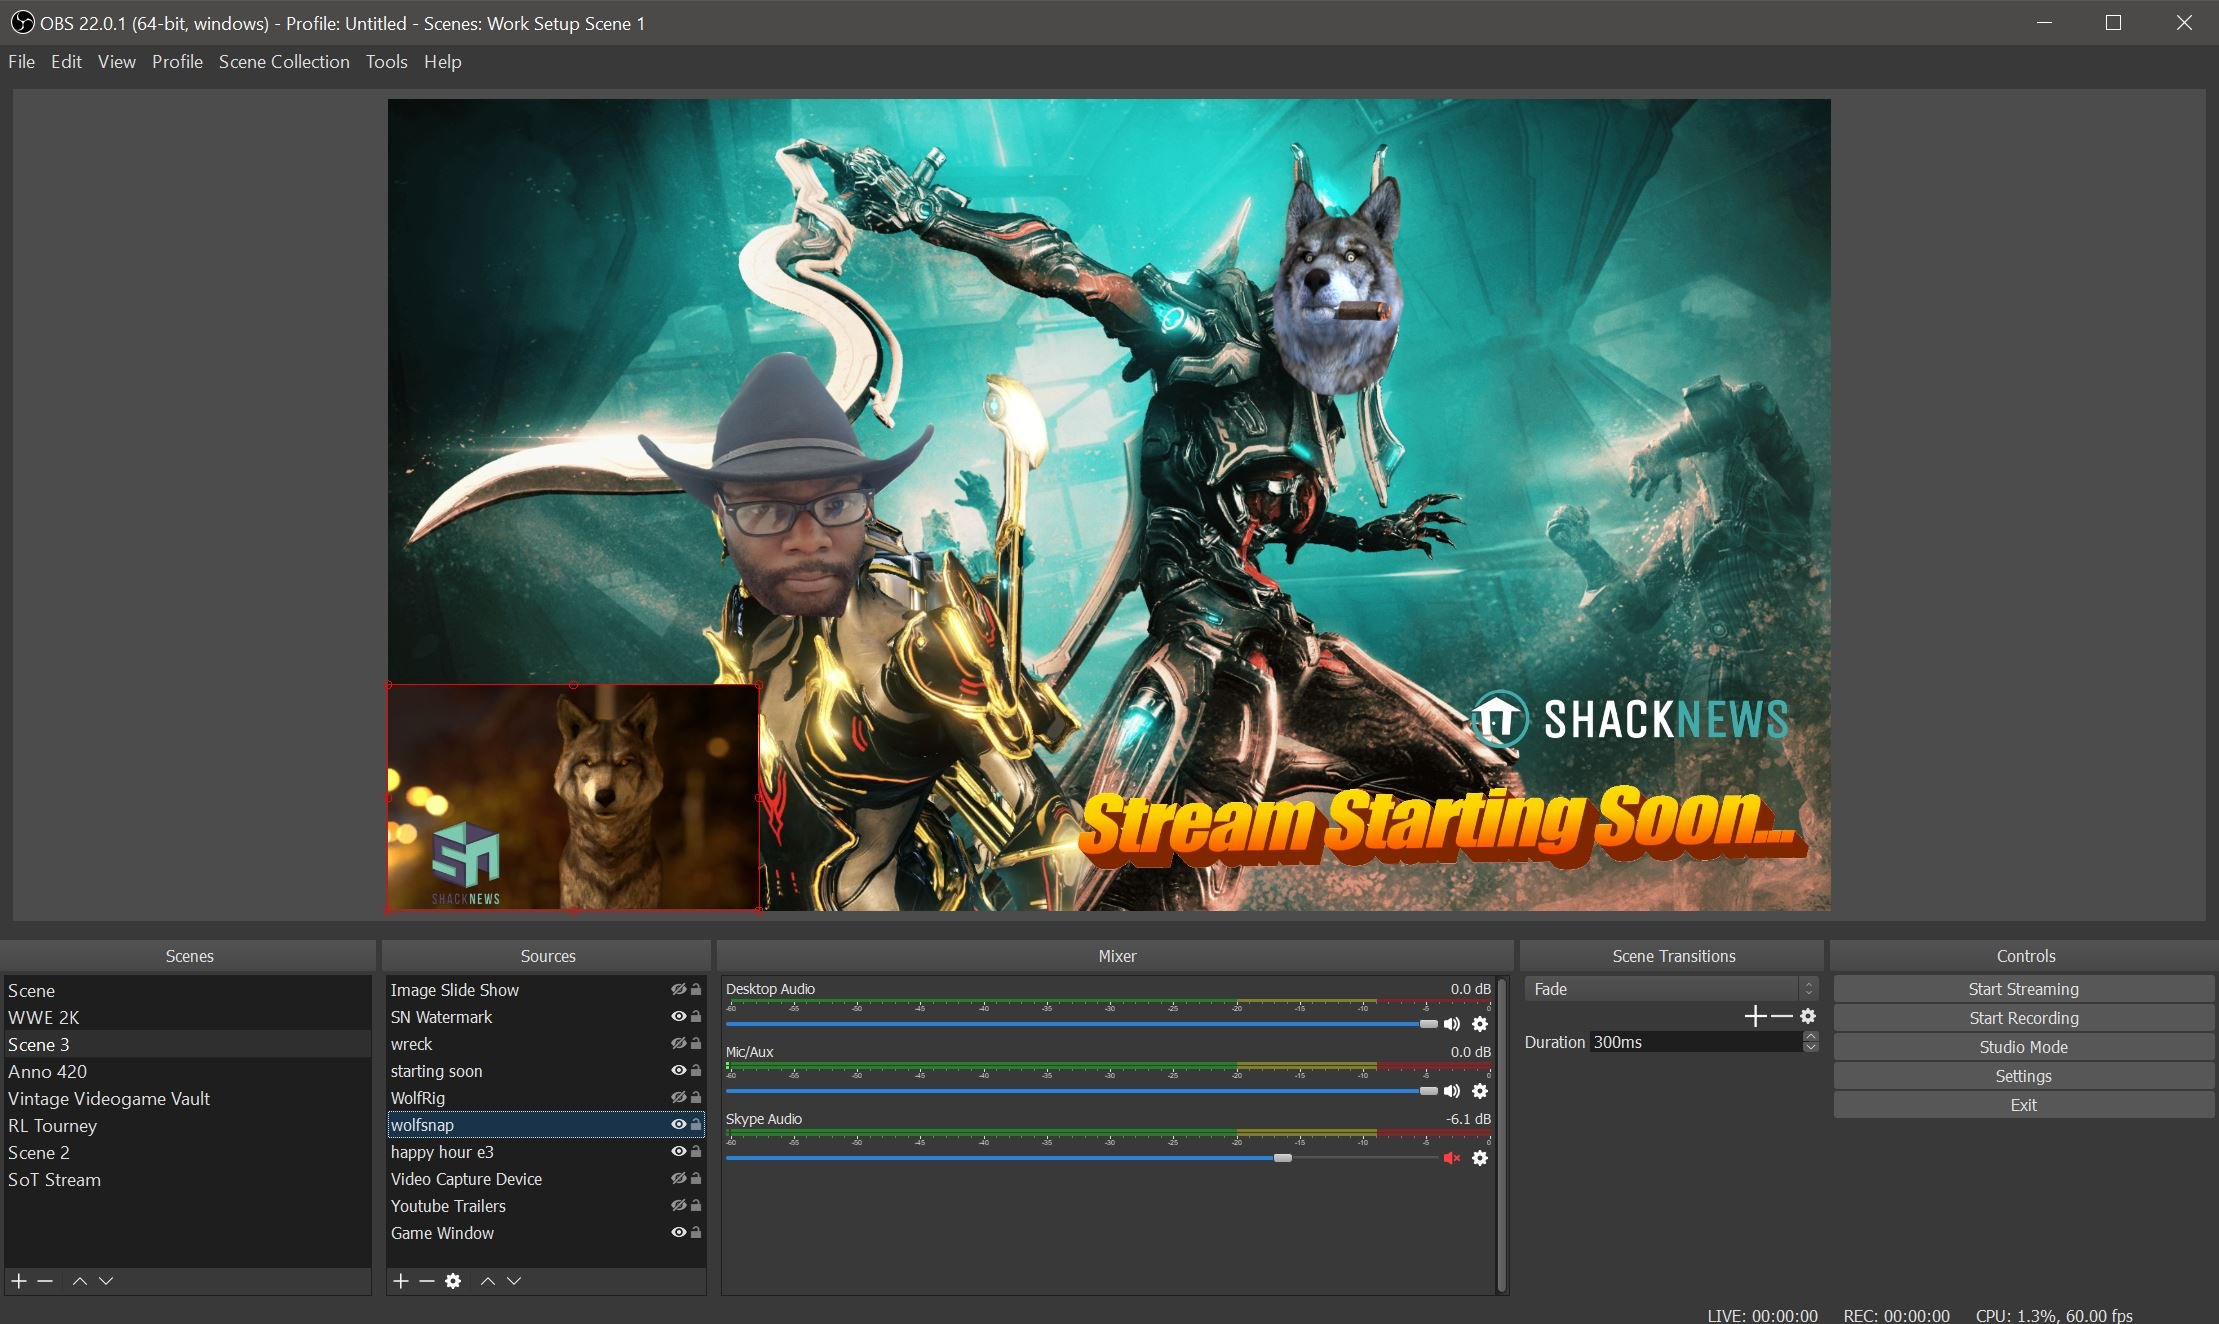 OBS Studio 22 brings new features and improvements for